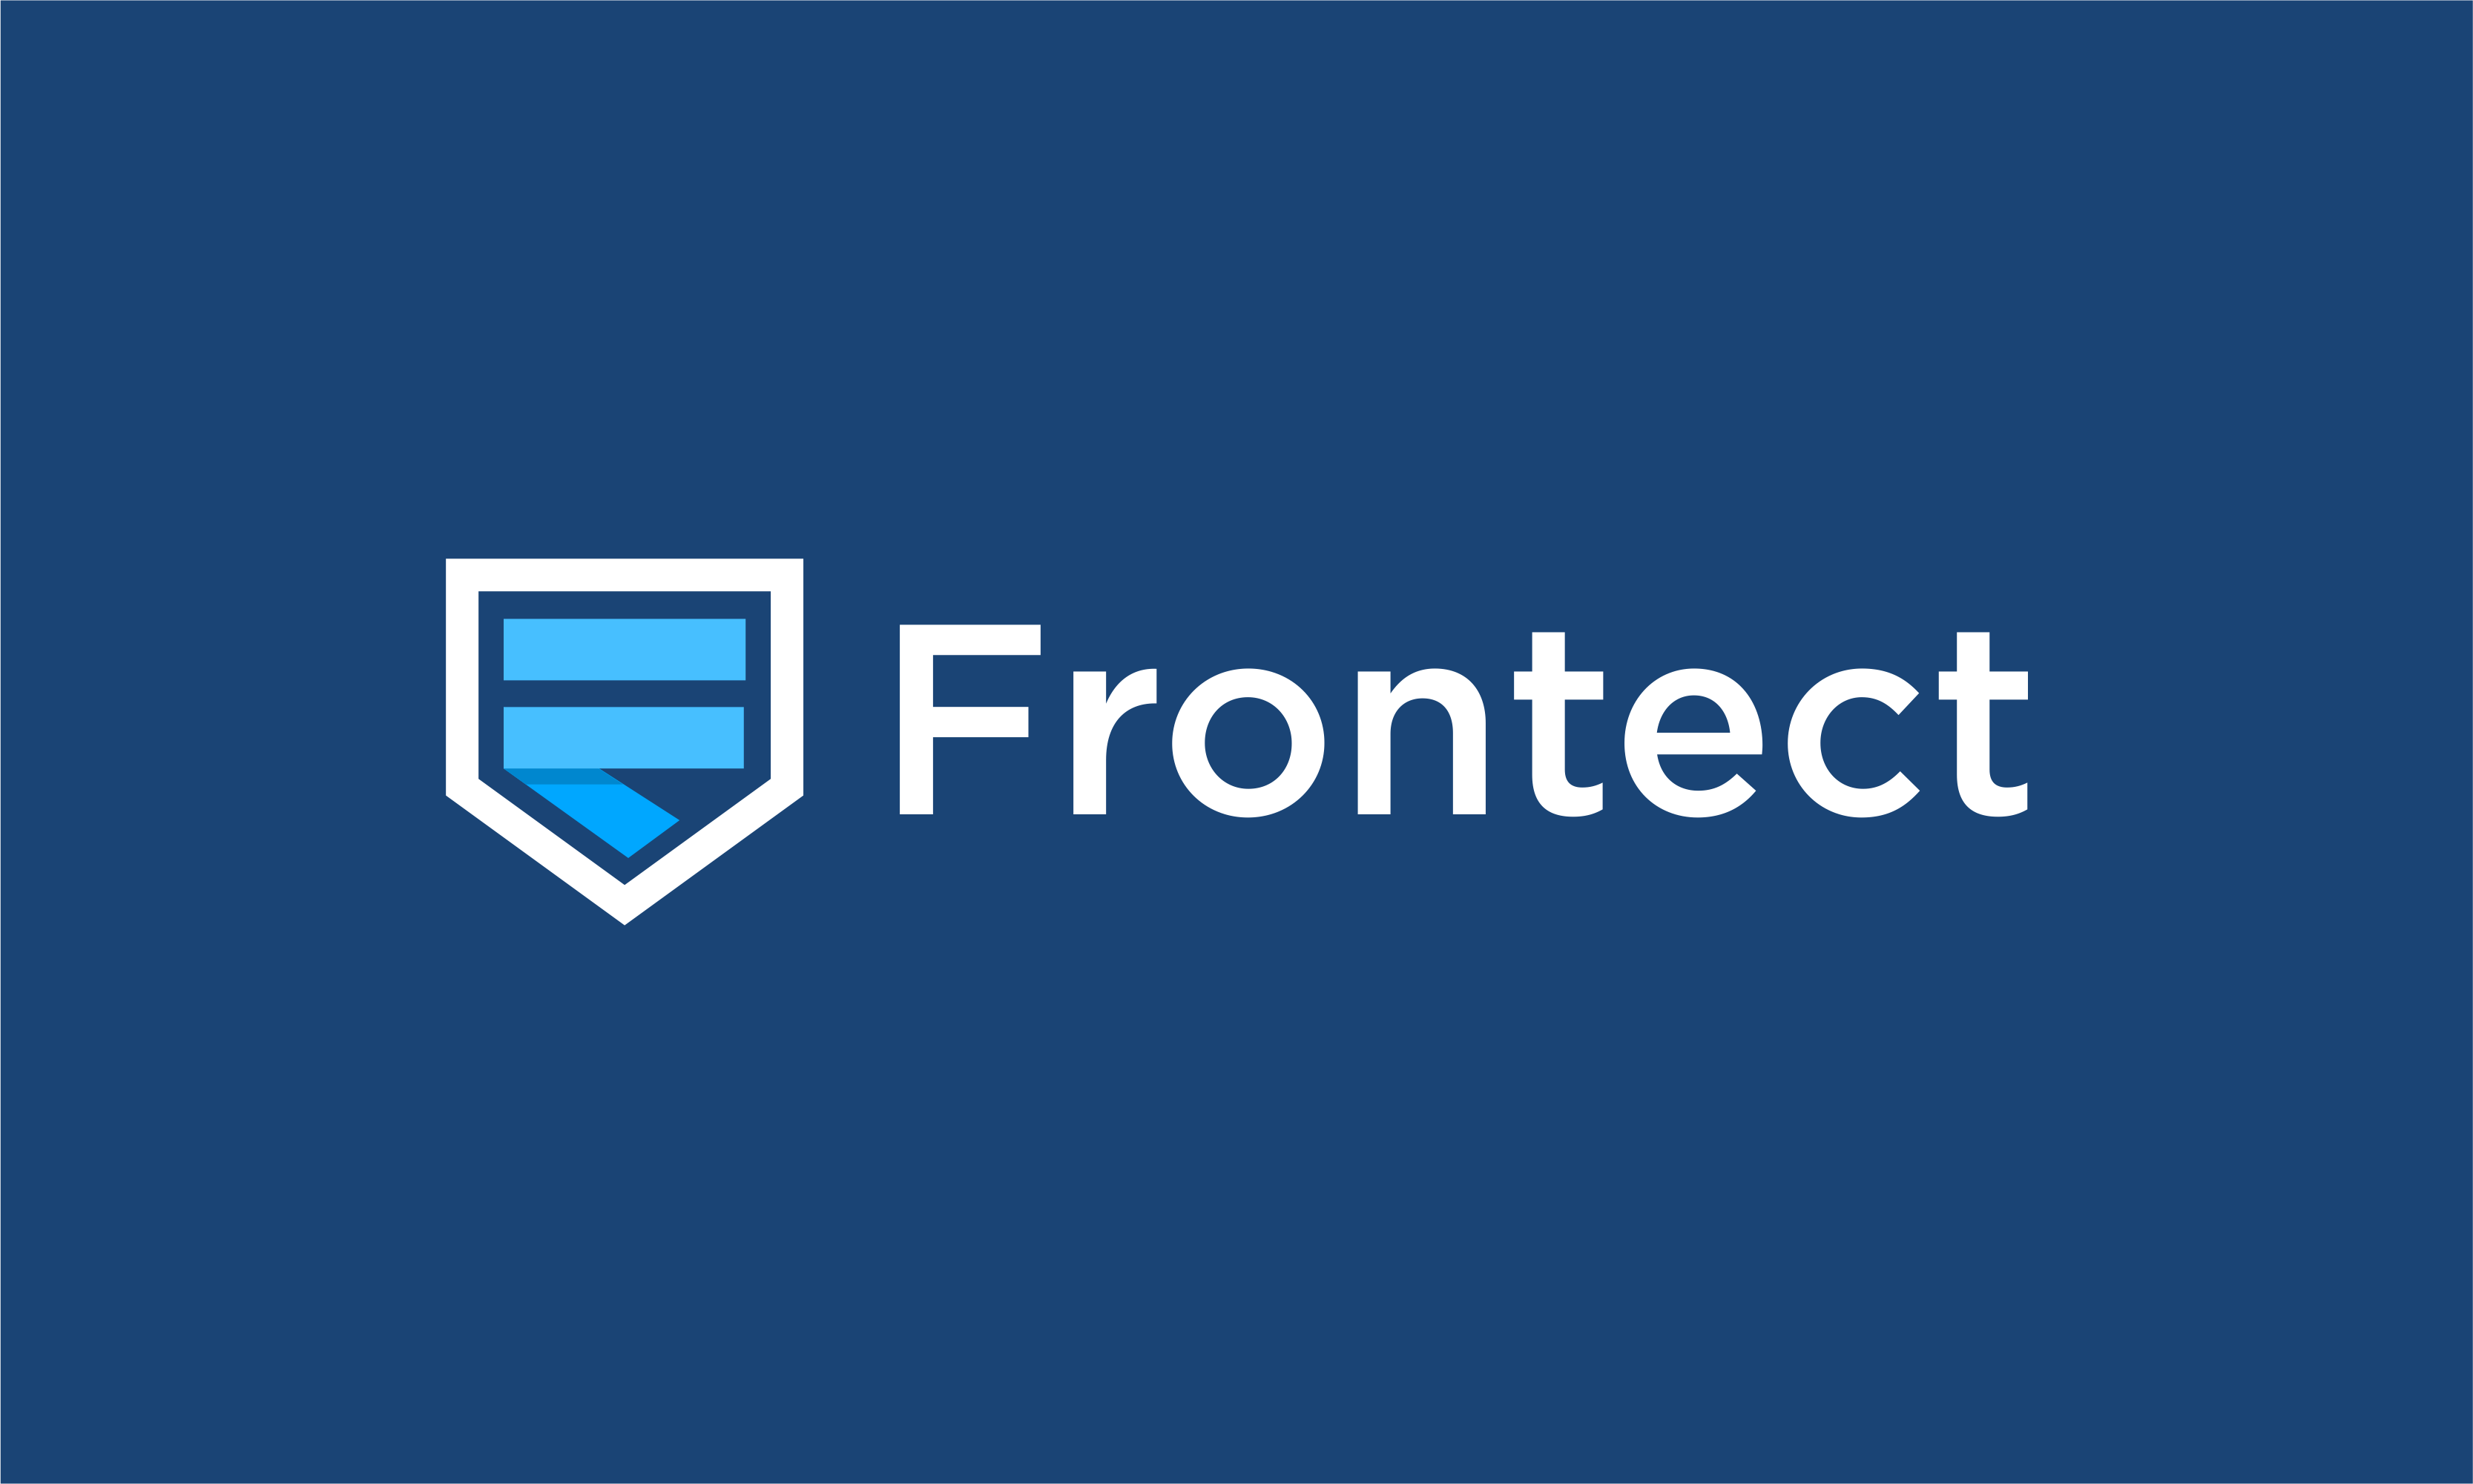 Frontect - Business domain name for sale